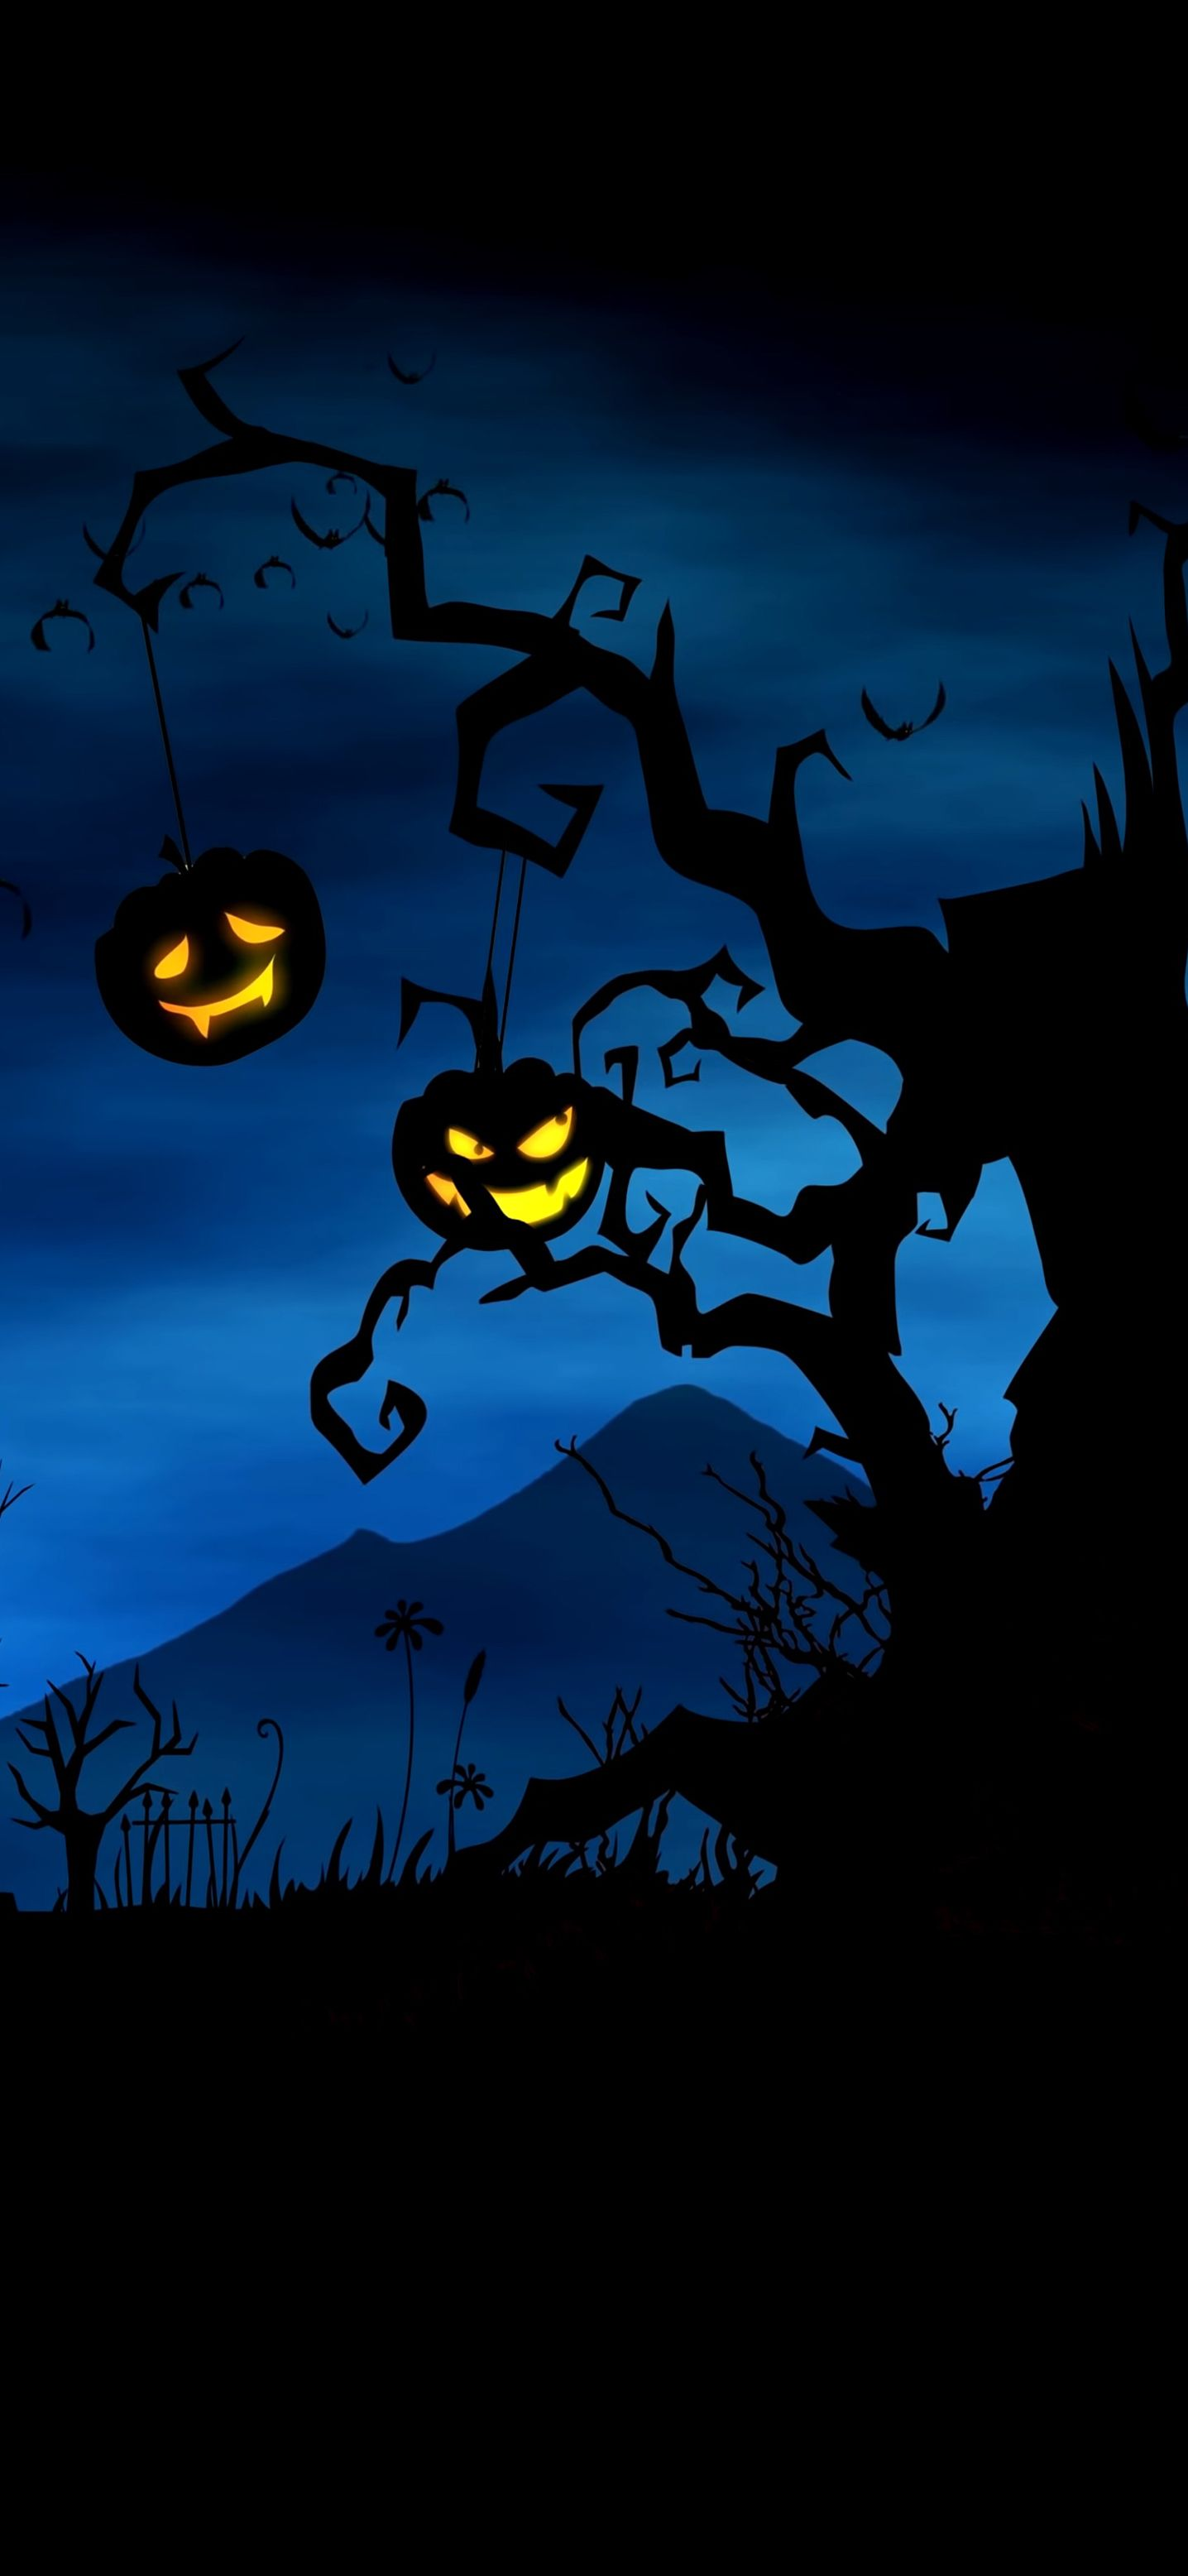 Halloween Wallpaper For Iphone Halloween Wallpaper Phone Wallpaper Cool Wallpapers For Phones